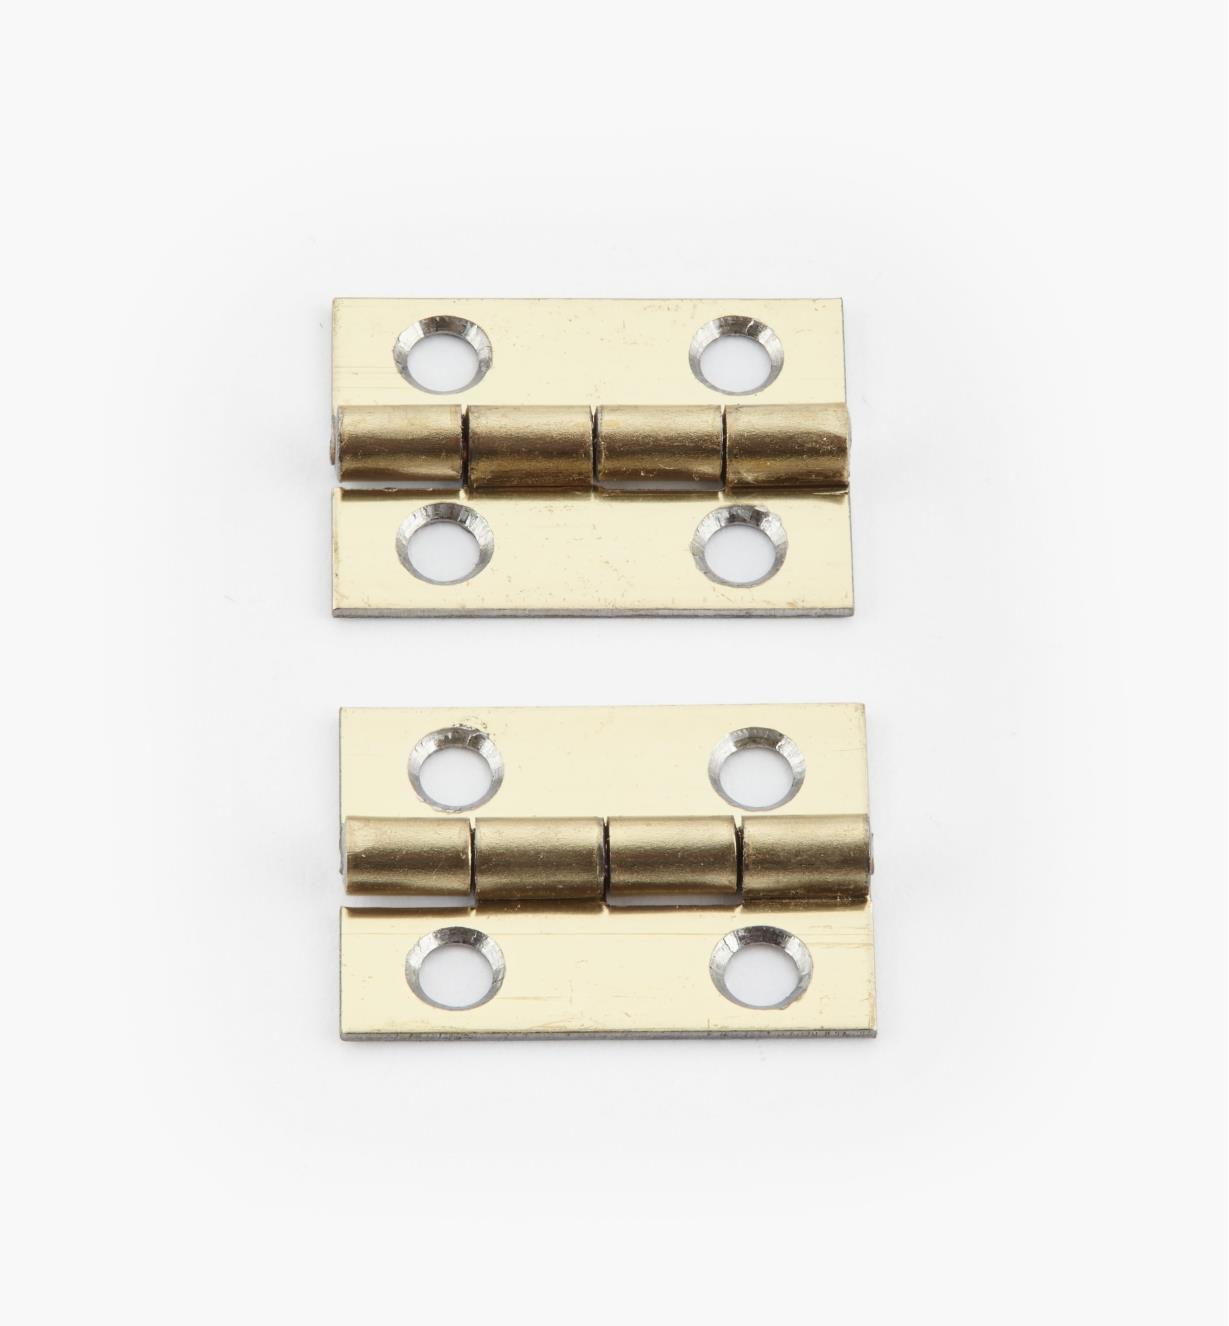 00D3009 - 20mm x 15mm Small Box Hinges, pr.